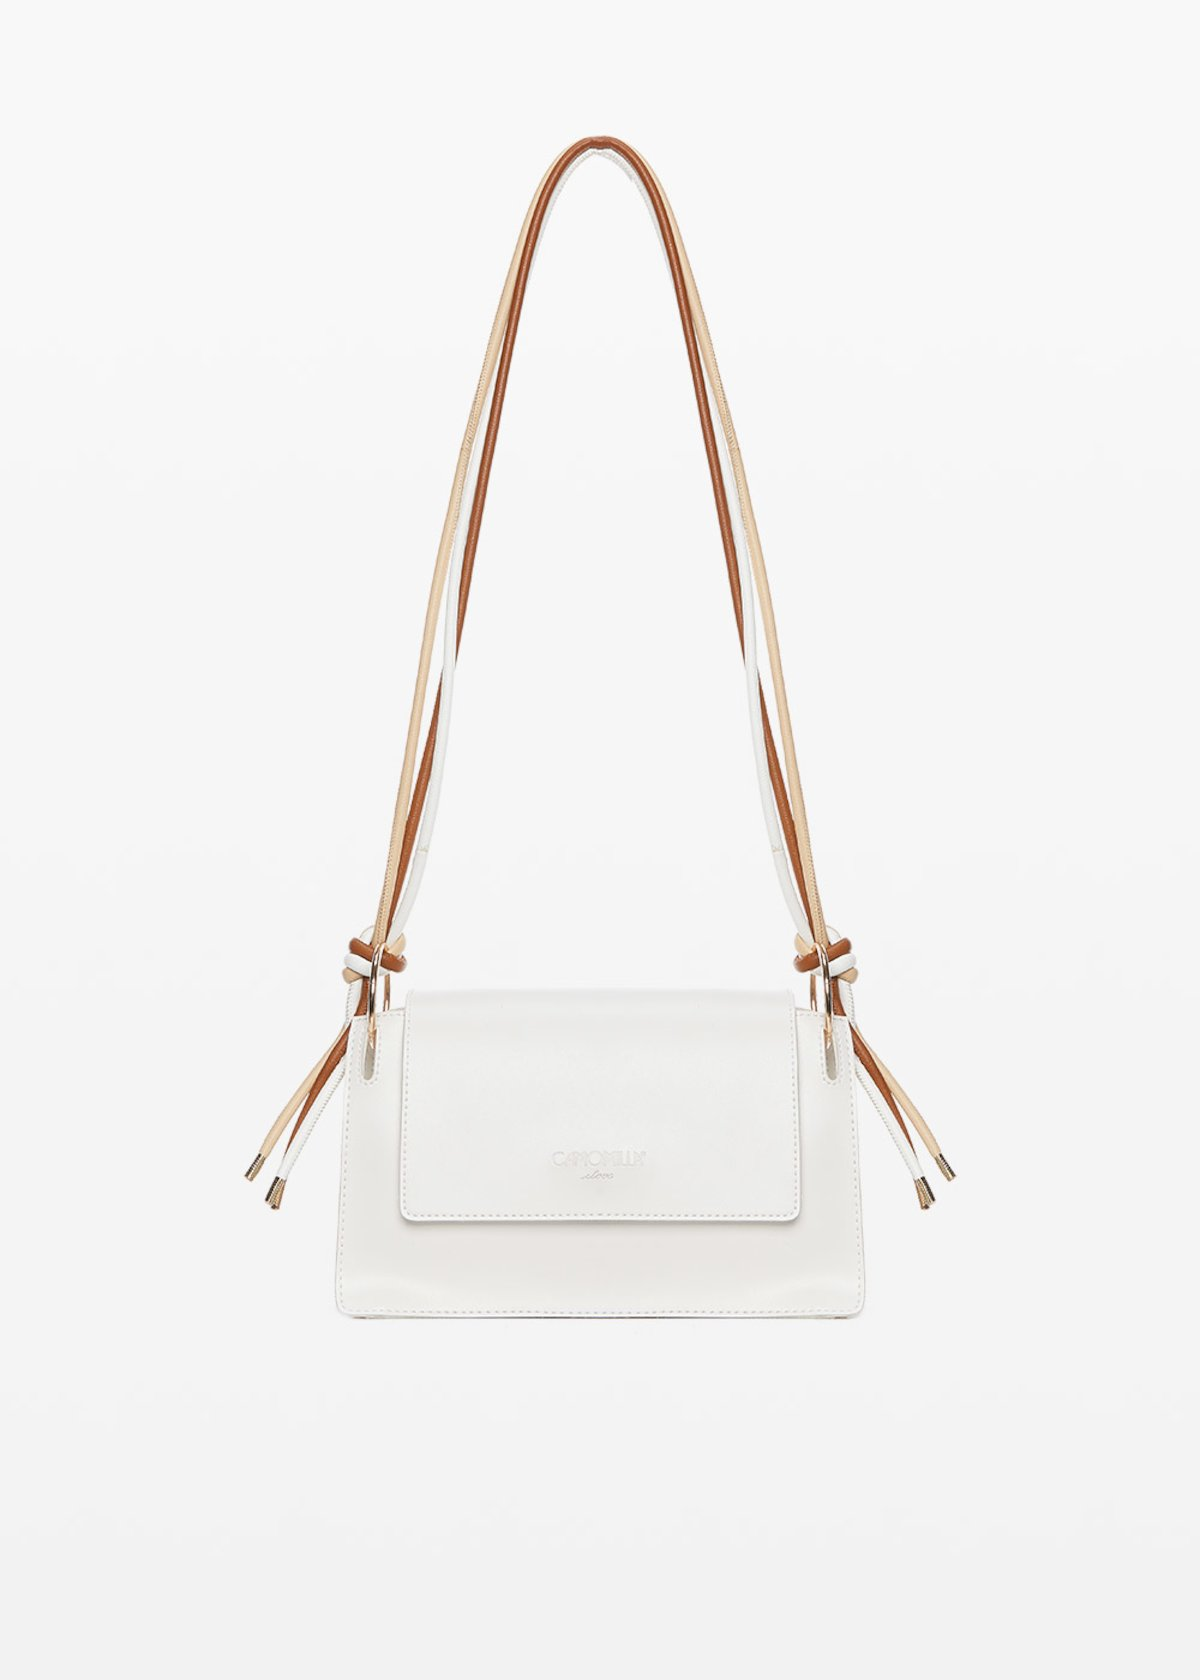 Bertha shoulder bag with layered shoulder strap and light gold details - White - Woman